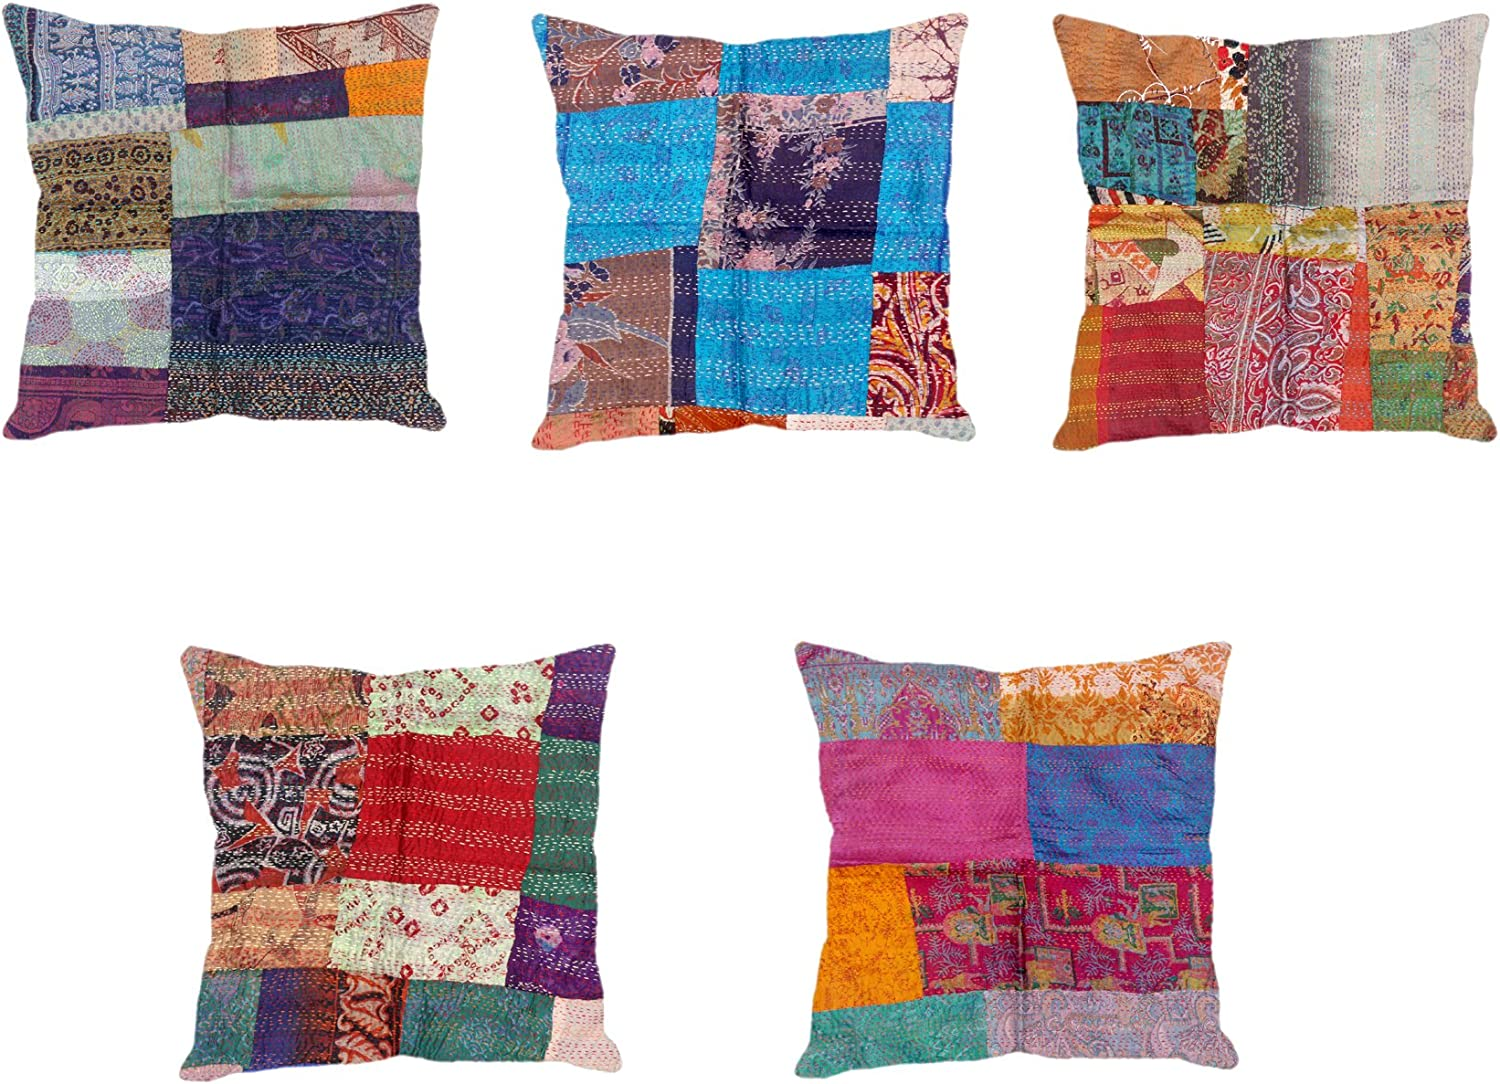 Indistar Set Of 5 Throw Pillow Cover Silk Patchwork Cushion Covers With Traditional Indian Kantha Work Decorative Cushion Covers 18 X 18 Inch 93100 482 Iw P5 Home Kitchen Throw Pillow Covers